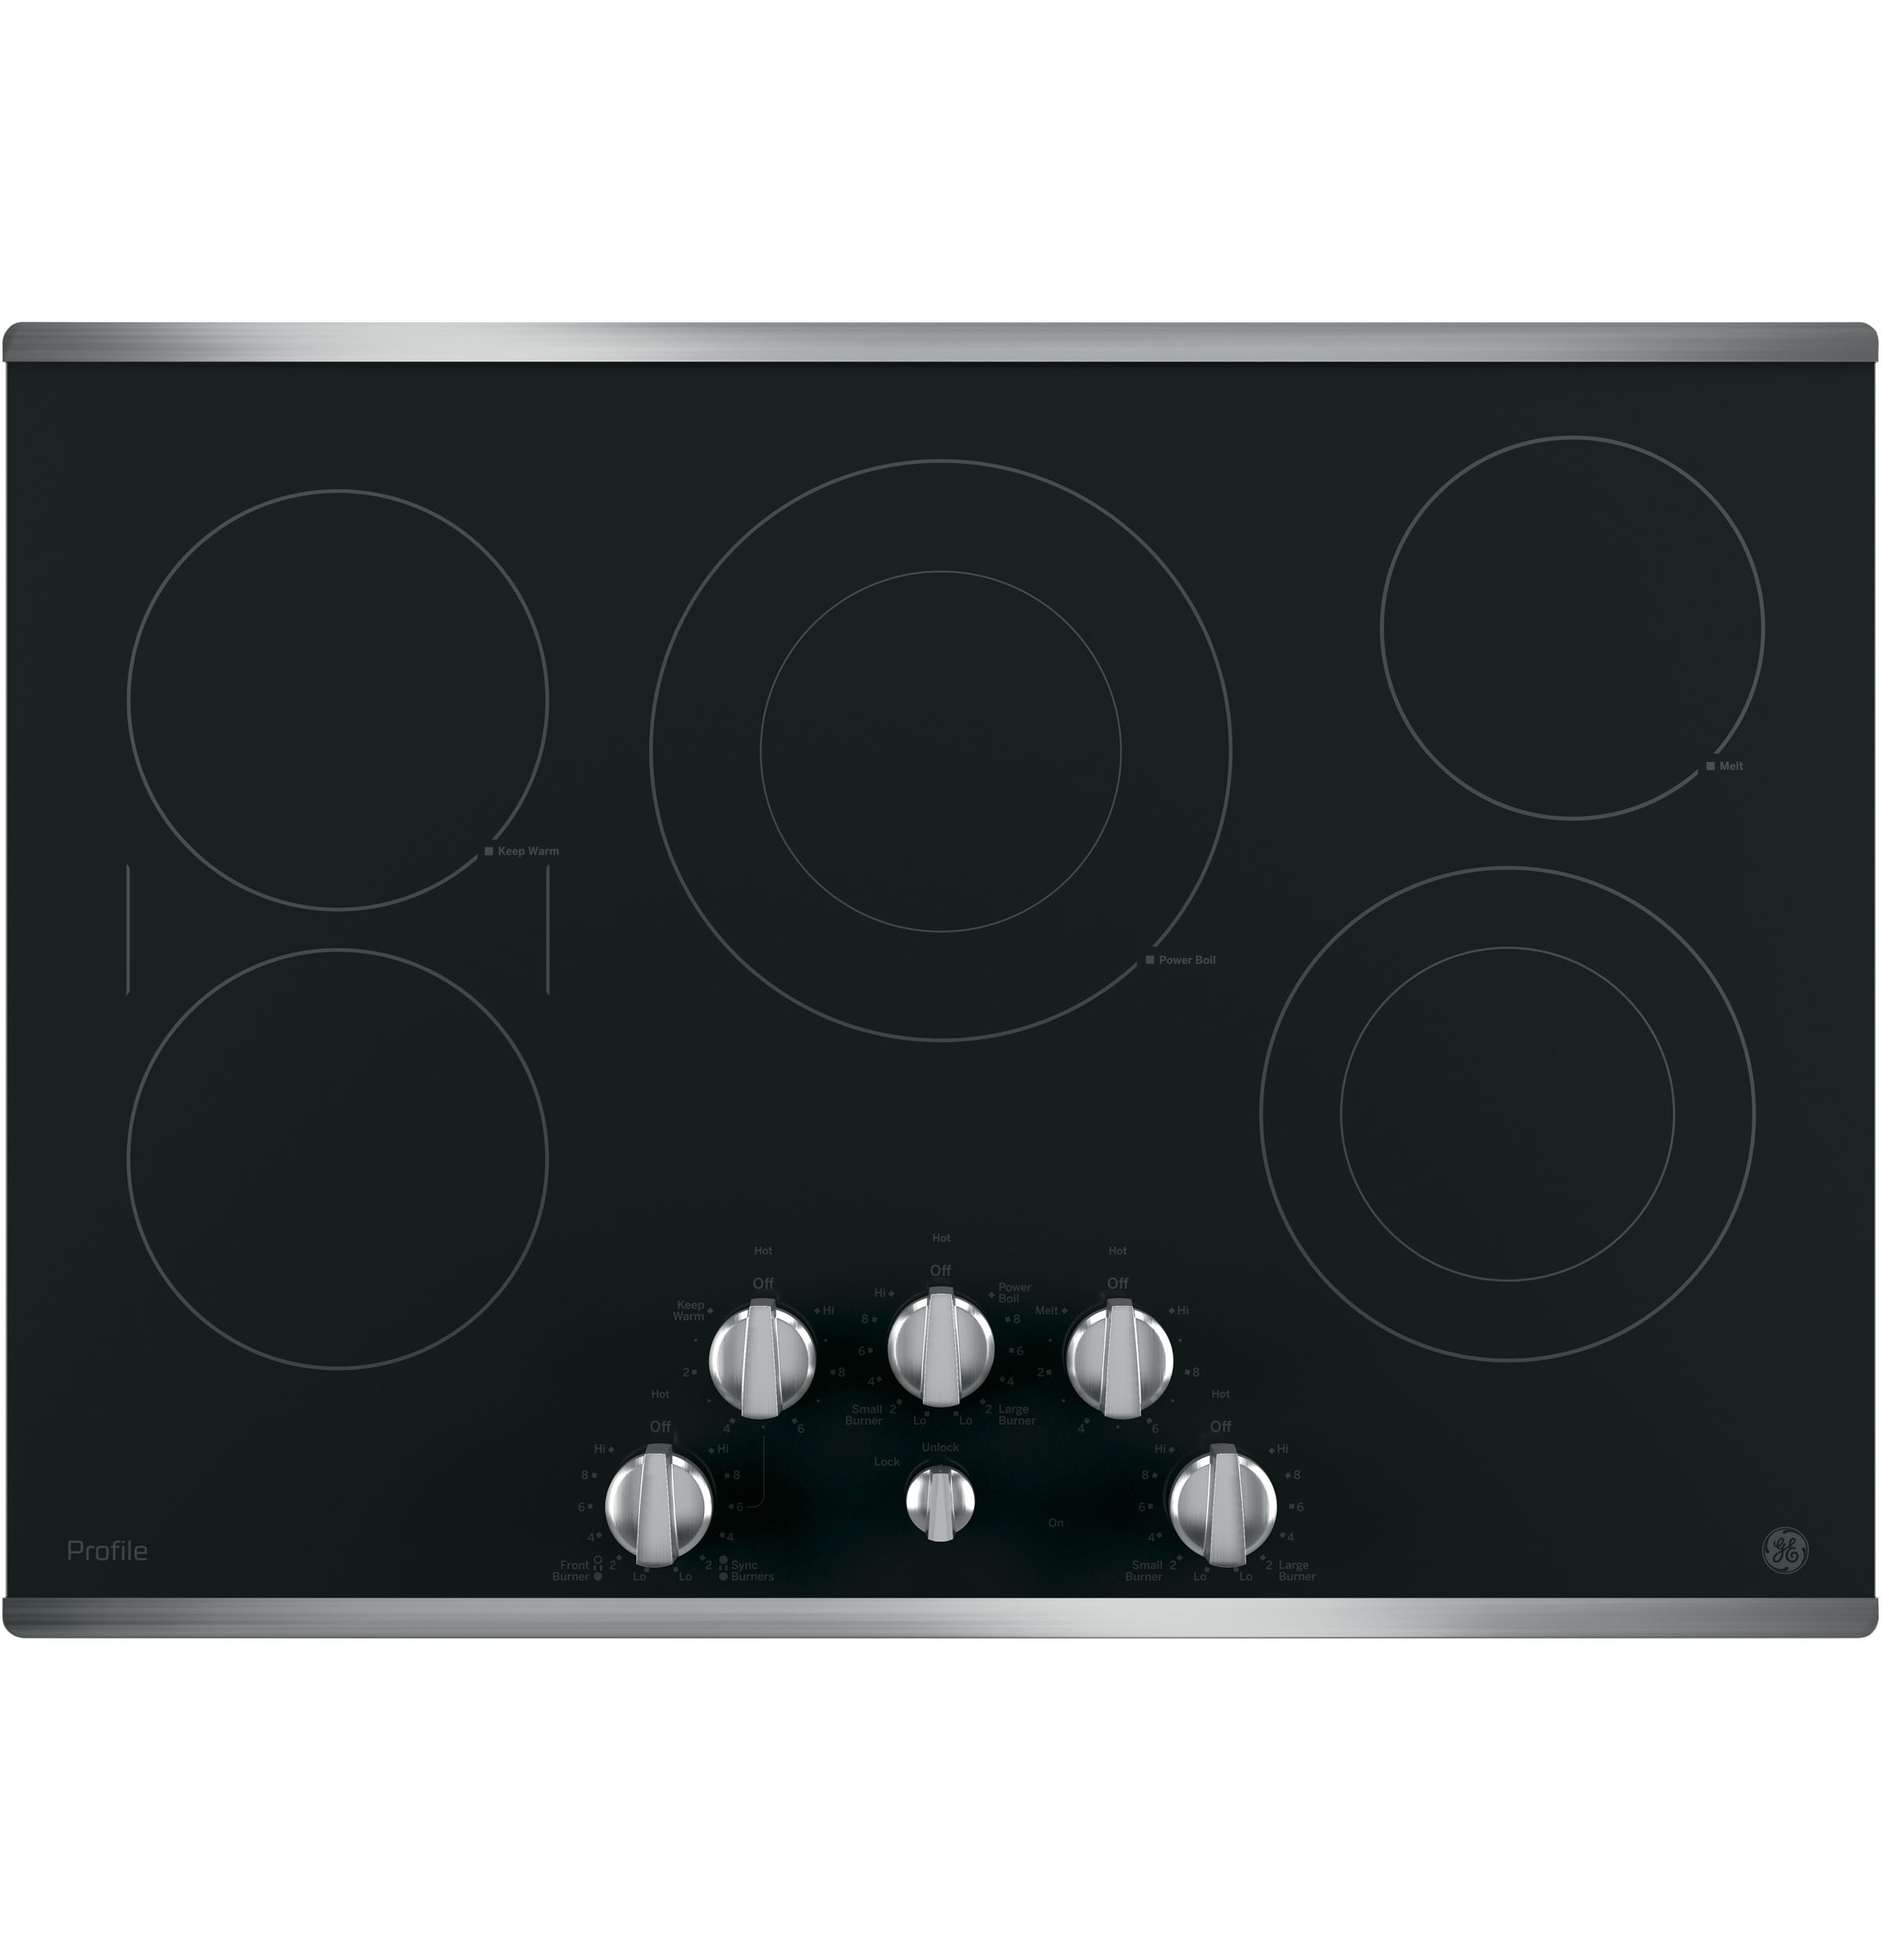 "GE Profile GE Profile™ Series 30"" Built-In Knob Control Electric Cooktop"